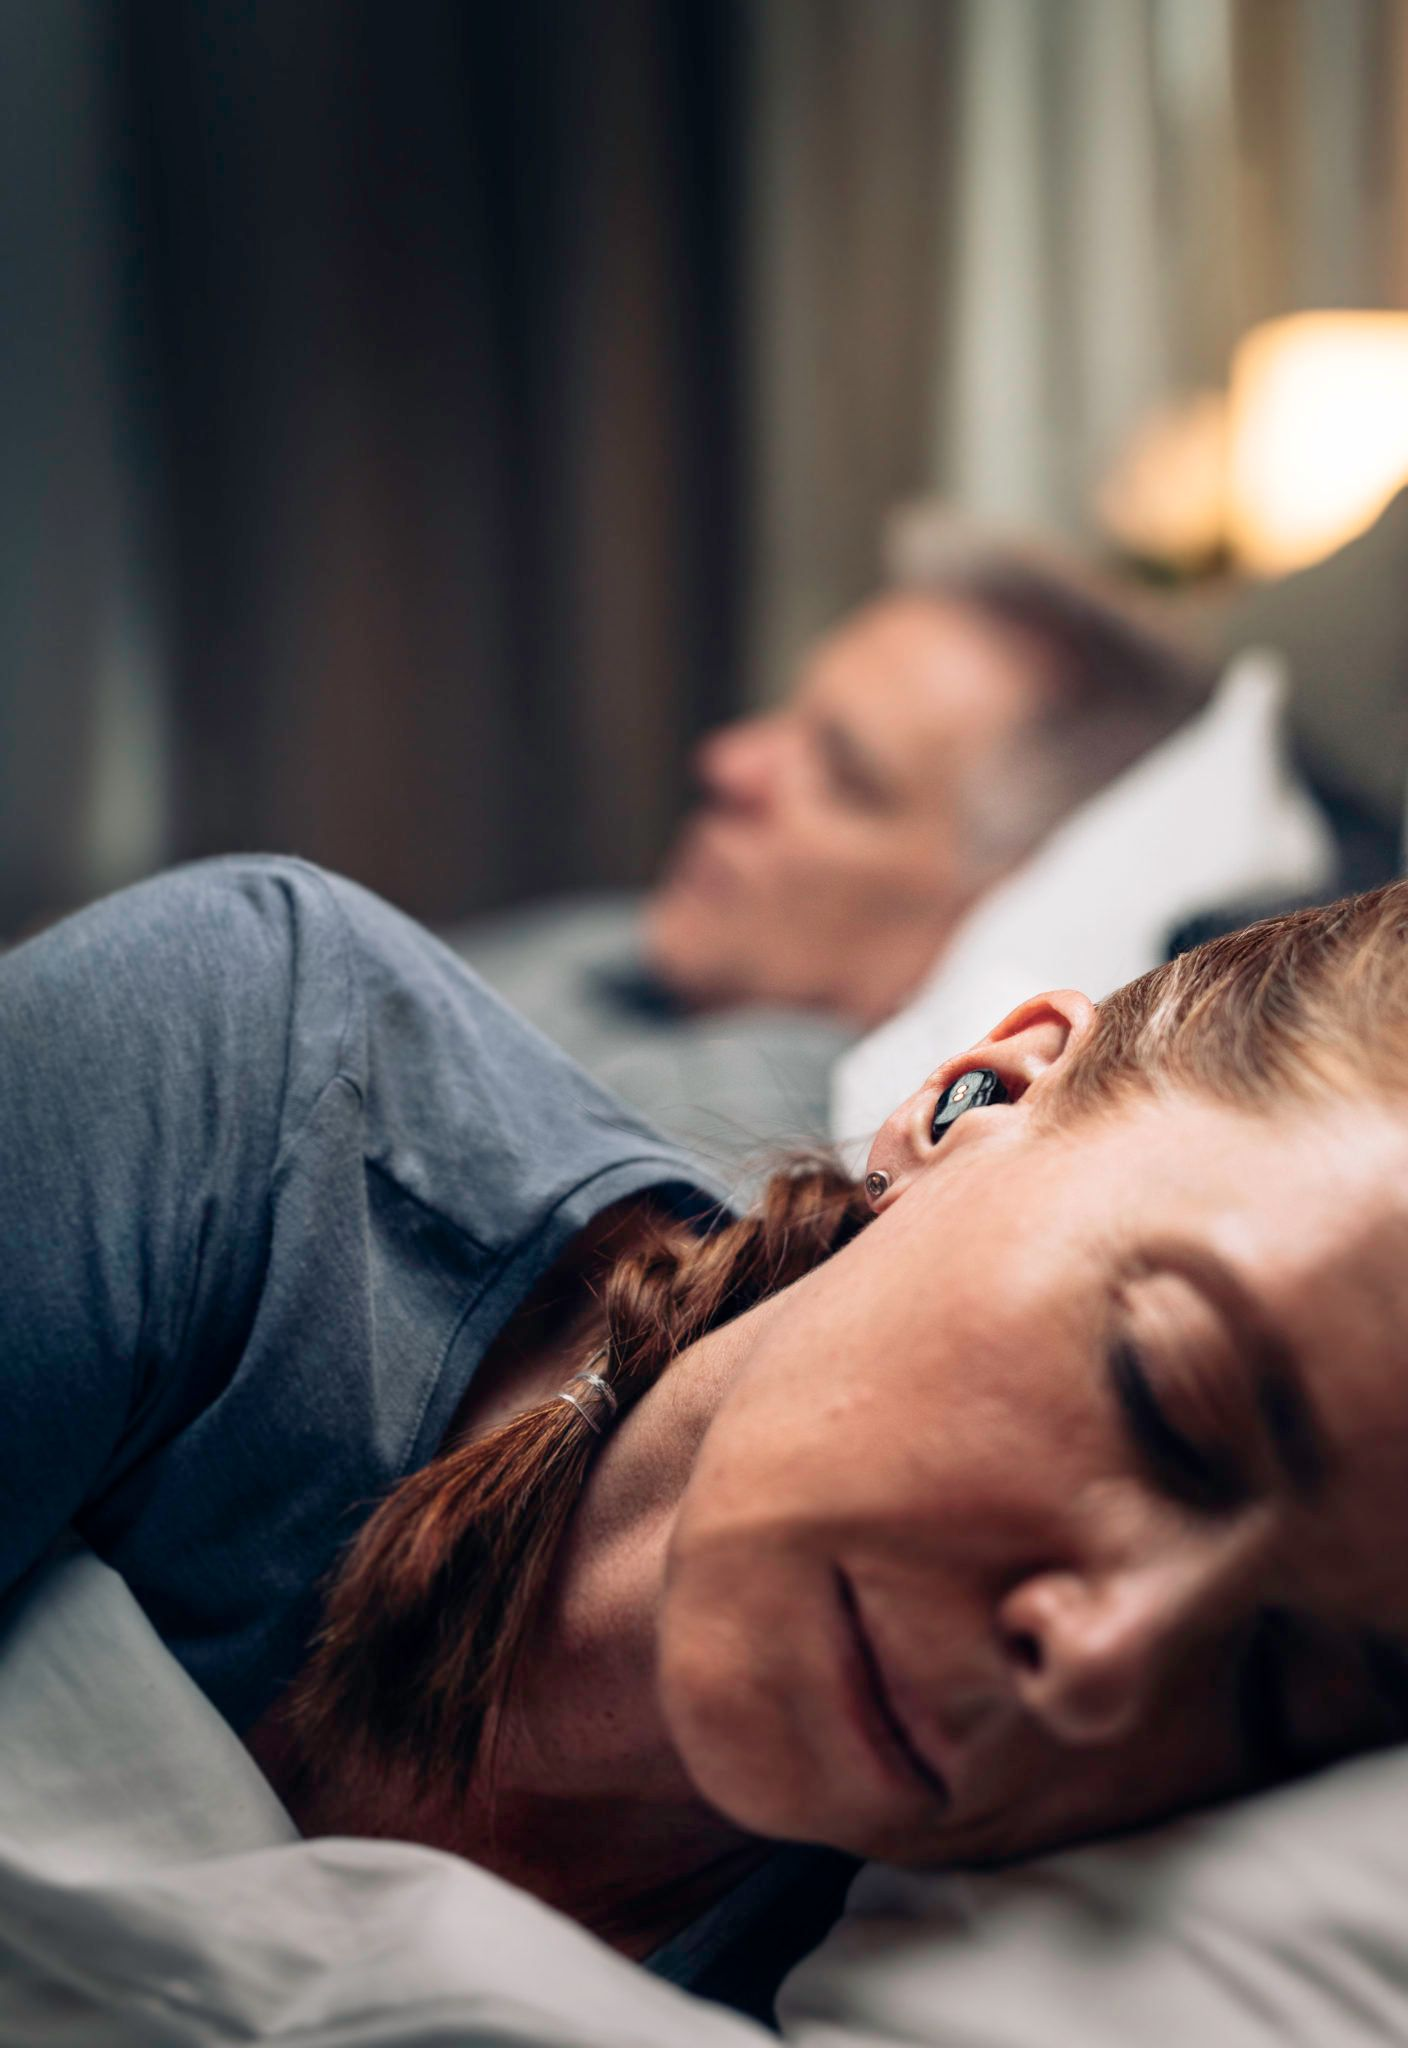 Noise-Cancelling Earbuds Will Silence Your Snoring